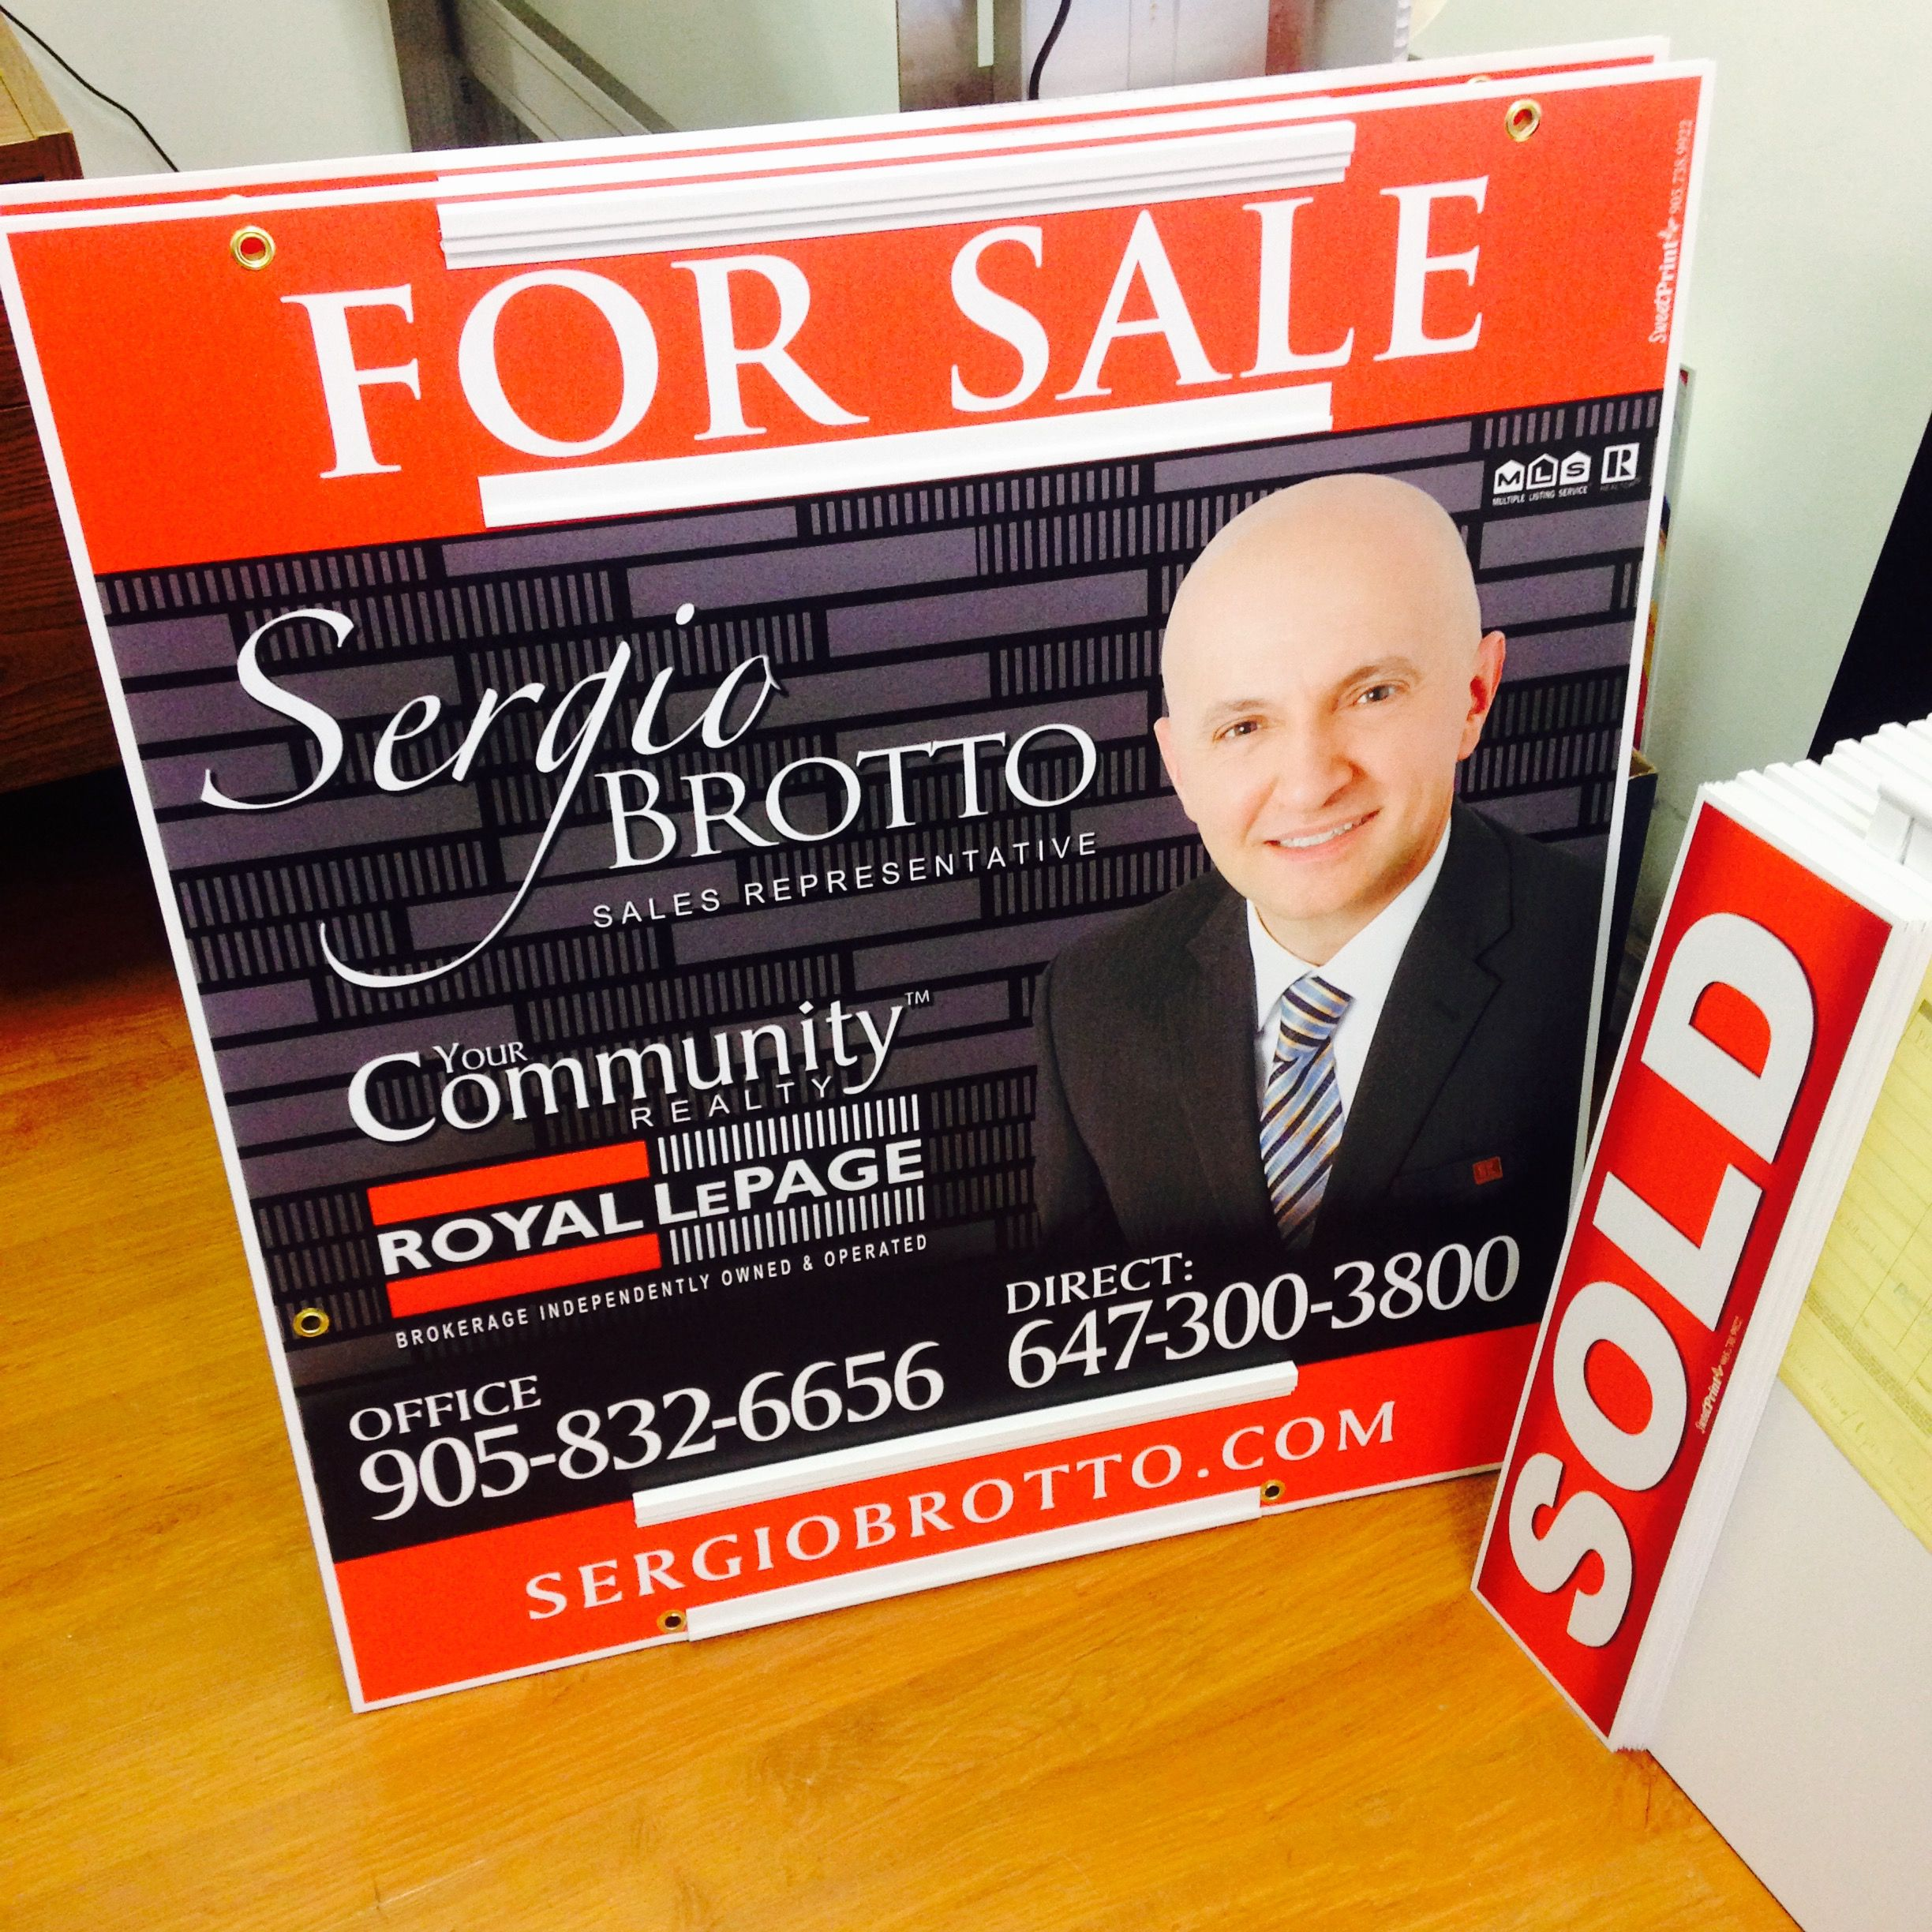 Realtor your community royal lepage for sale sign with sliders for realtor your community royal lepage for sale sign with sliders for sold and address riders reheart Images